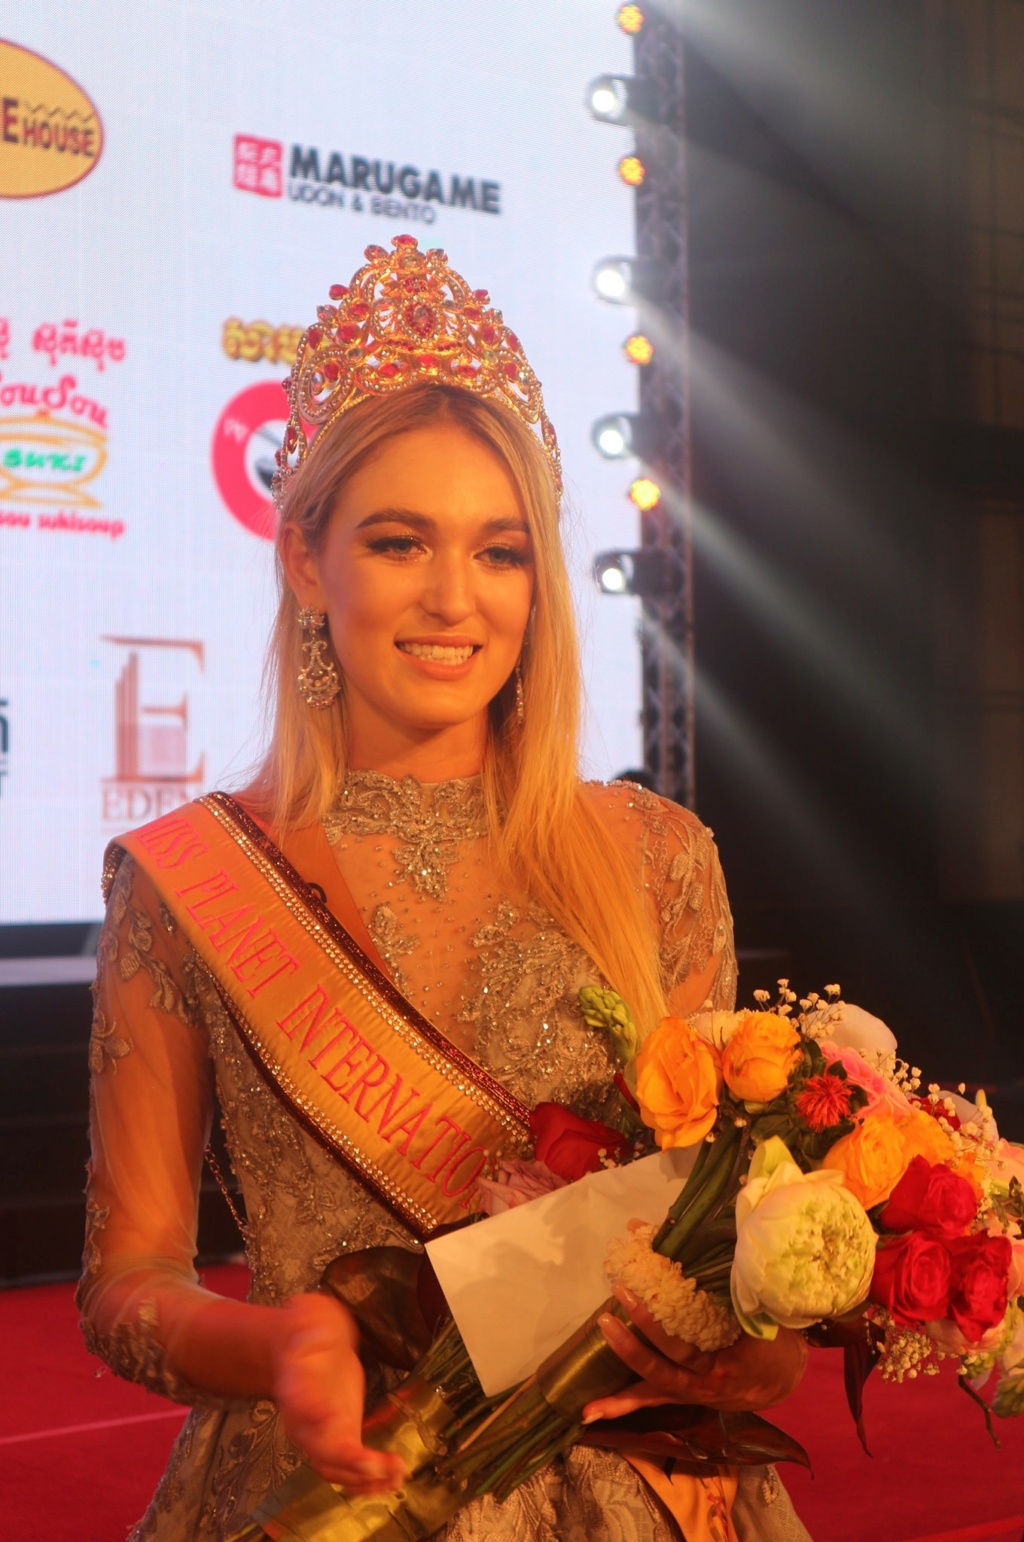 Miss Planet International 2019 is Monique Best from South Africa  - Page 2 53238210